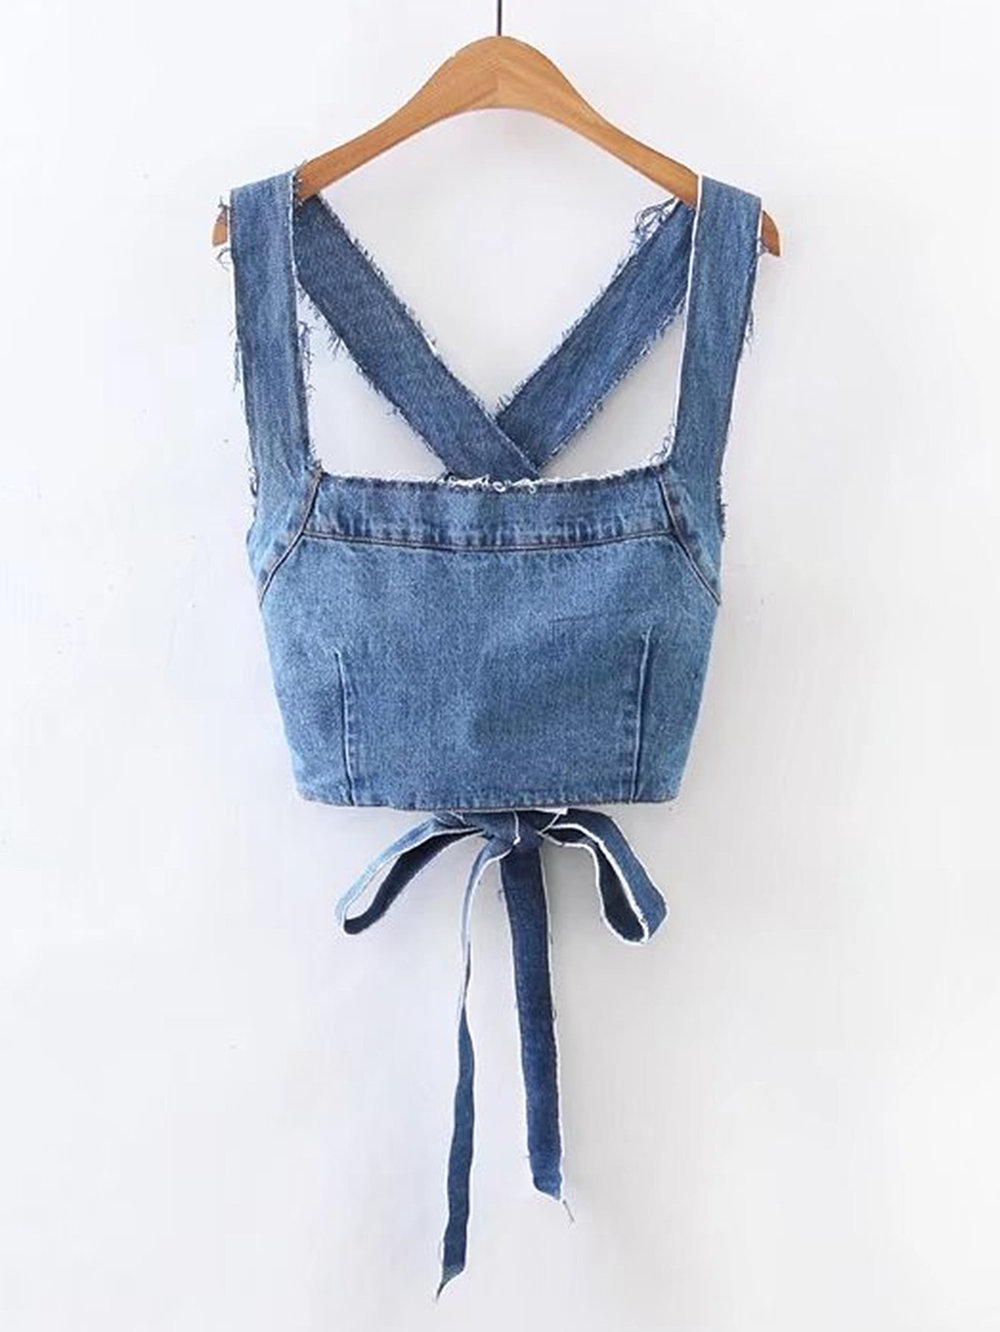 Woahhh this is ready for some crazy combos  Frayed Detail Criss Cross Back Denim Top / Romwe / $15